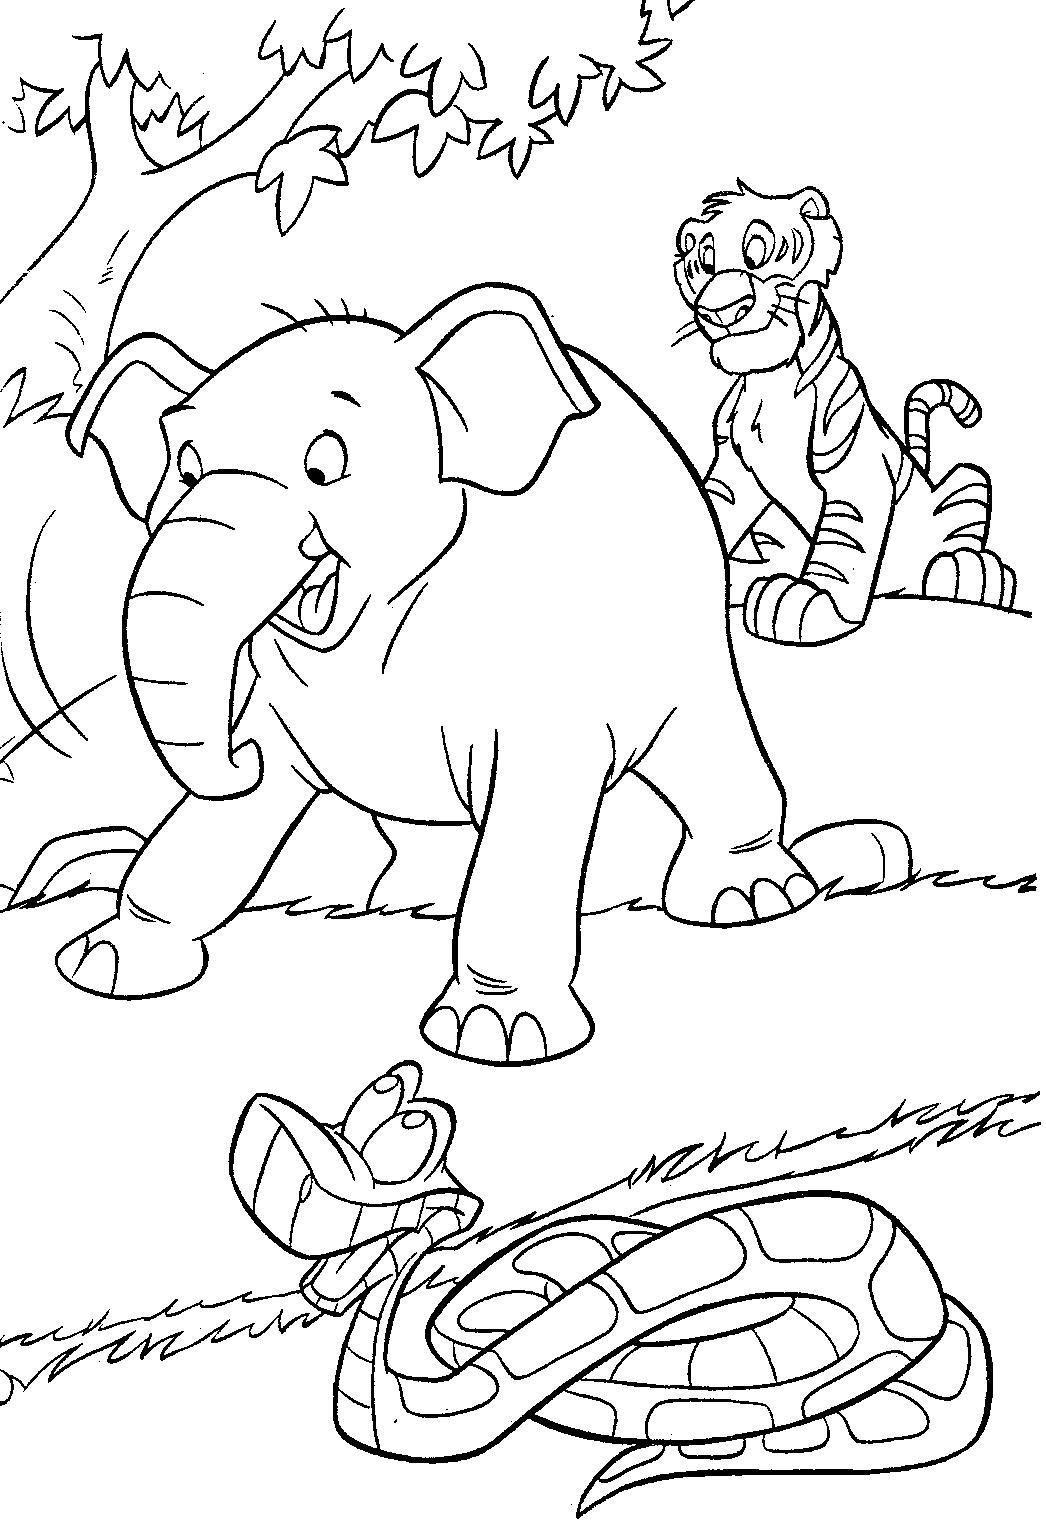 Jungle Coloring Pages Animal coloring pages, Cartoon